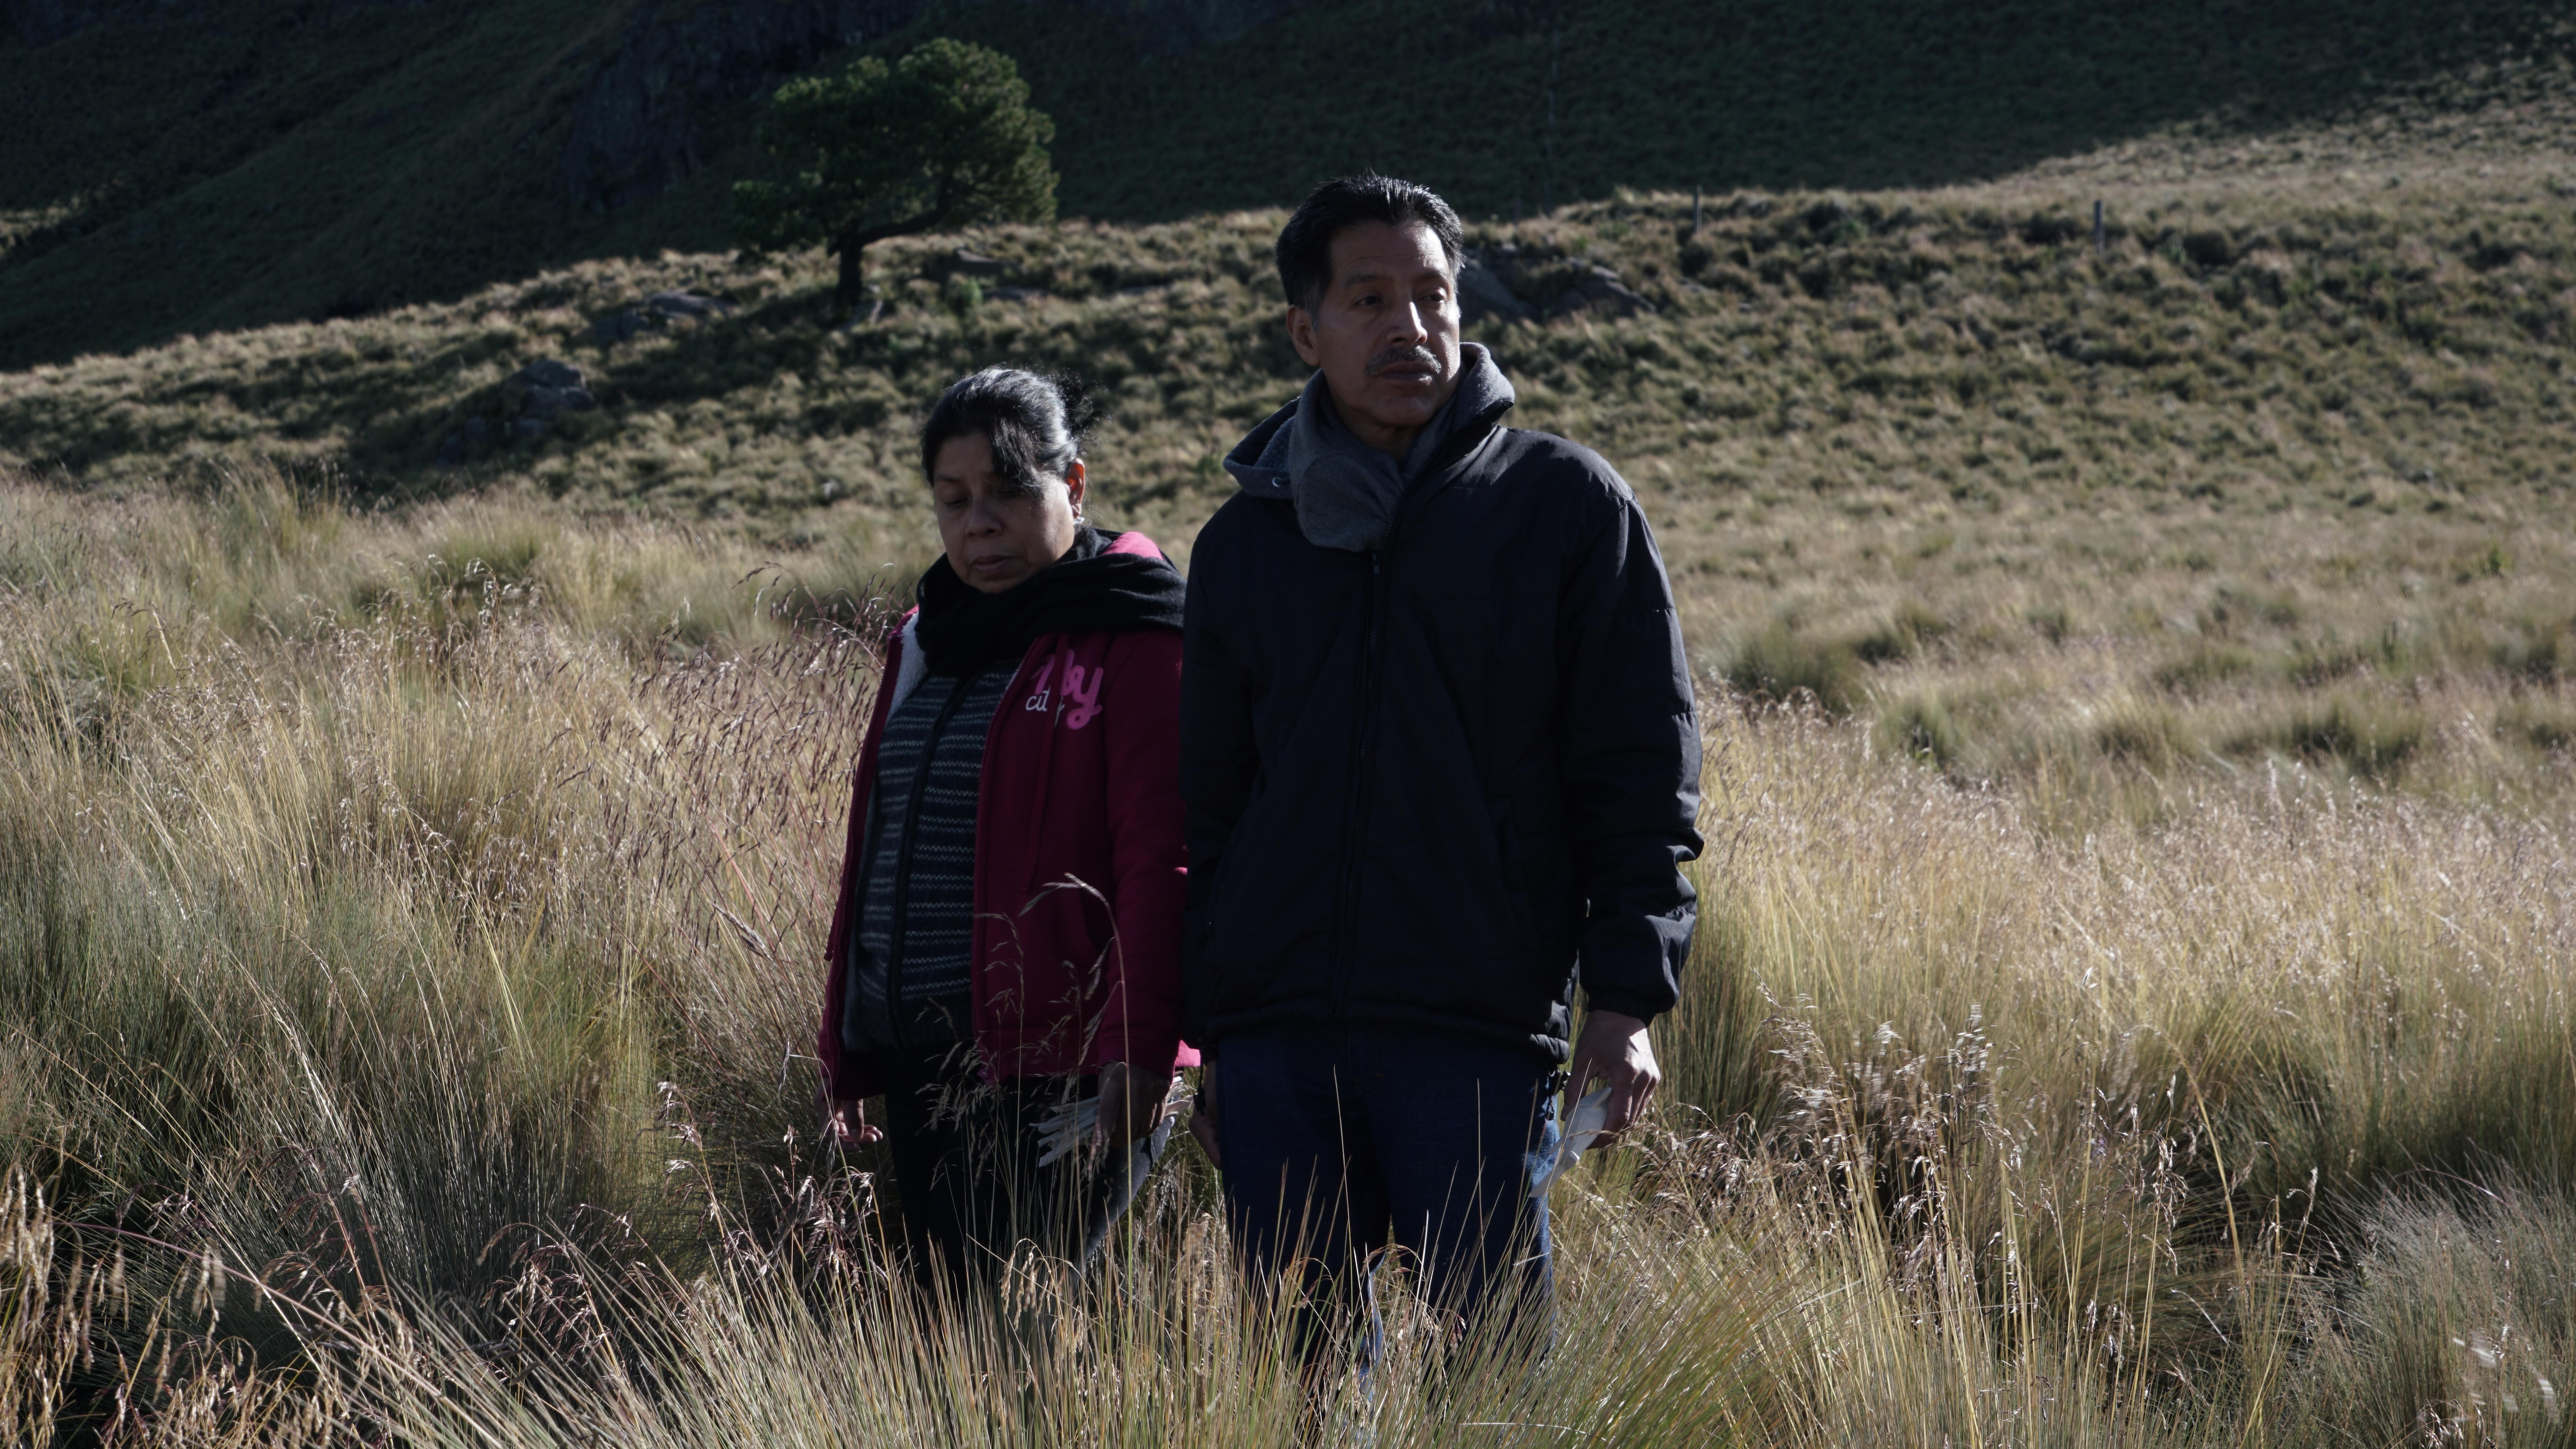 Two adults stand in an open field.